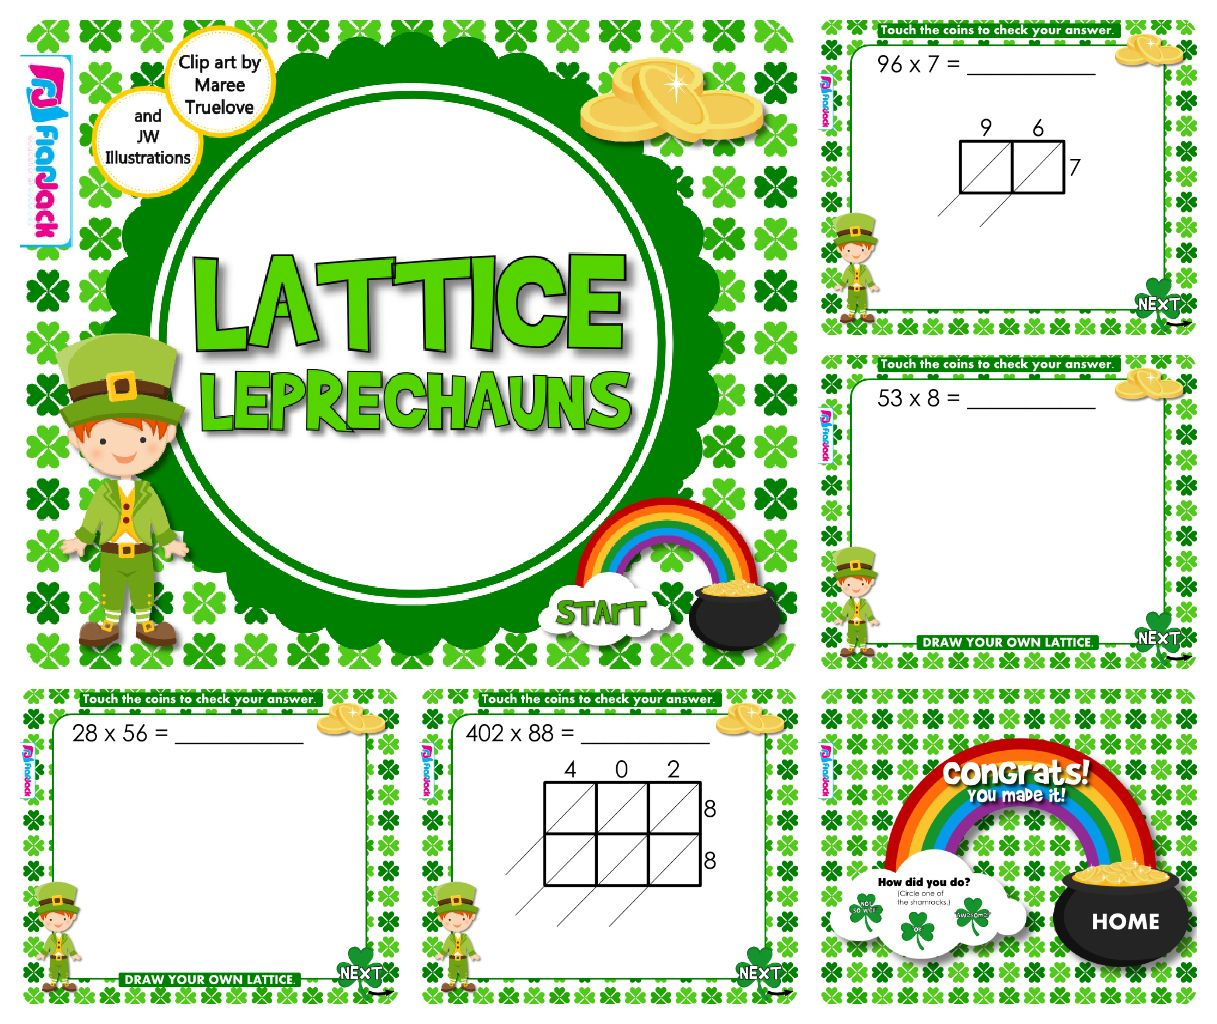 Lattice Leprechauns (Multiplication) Smart Board Game - FREE Have ...